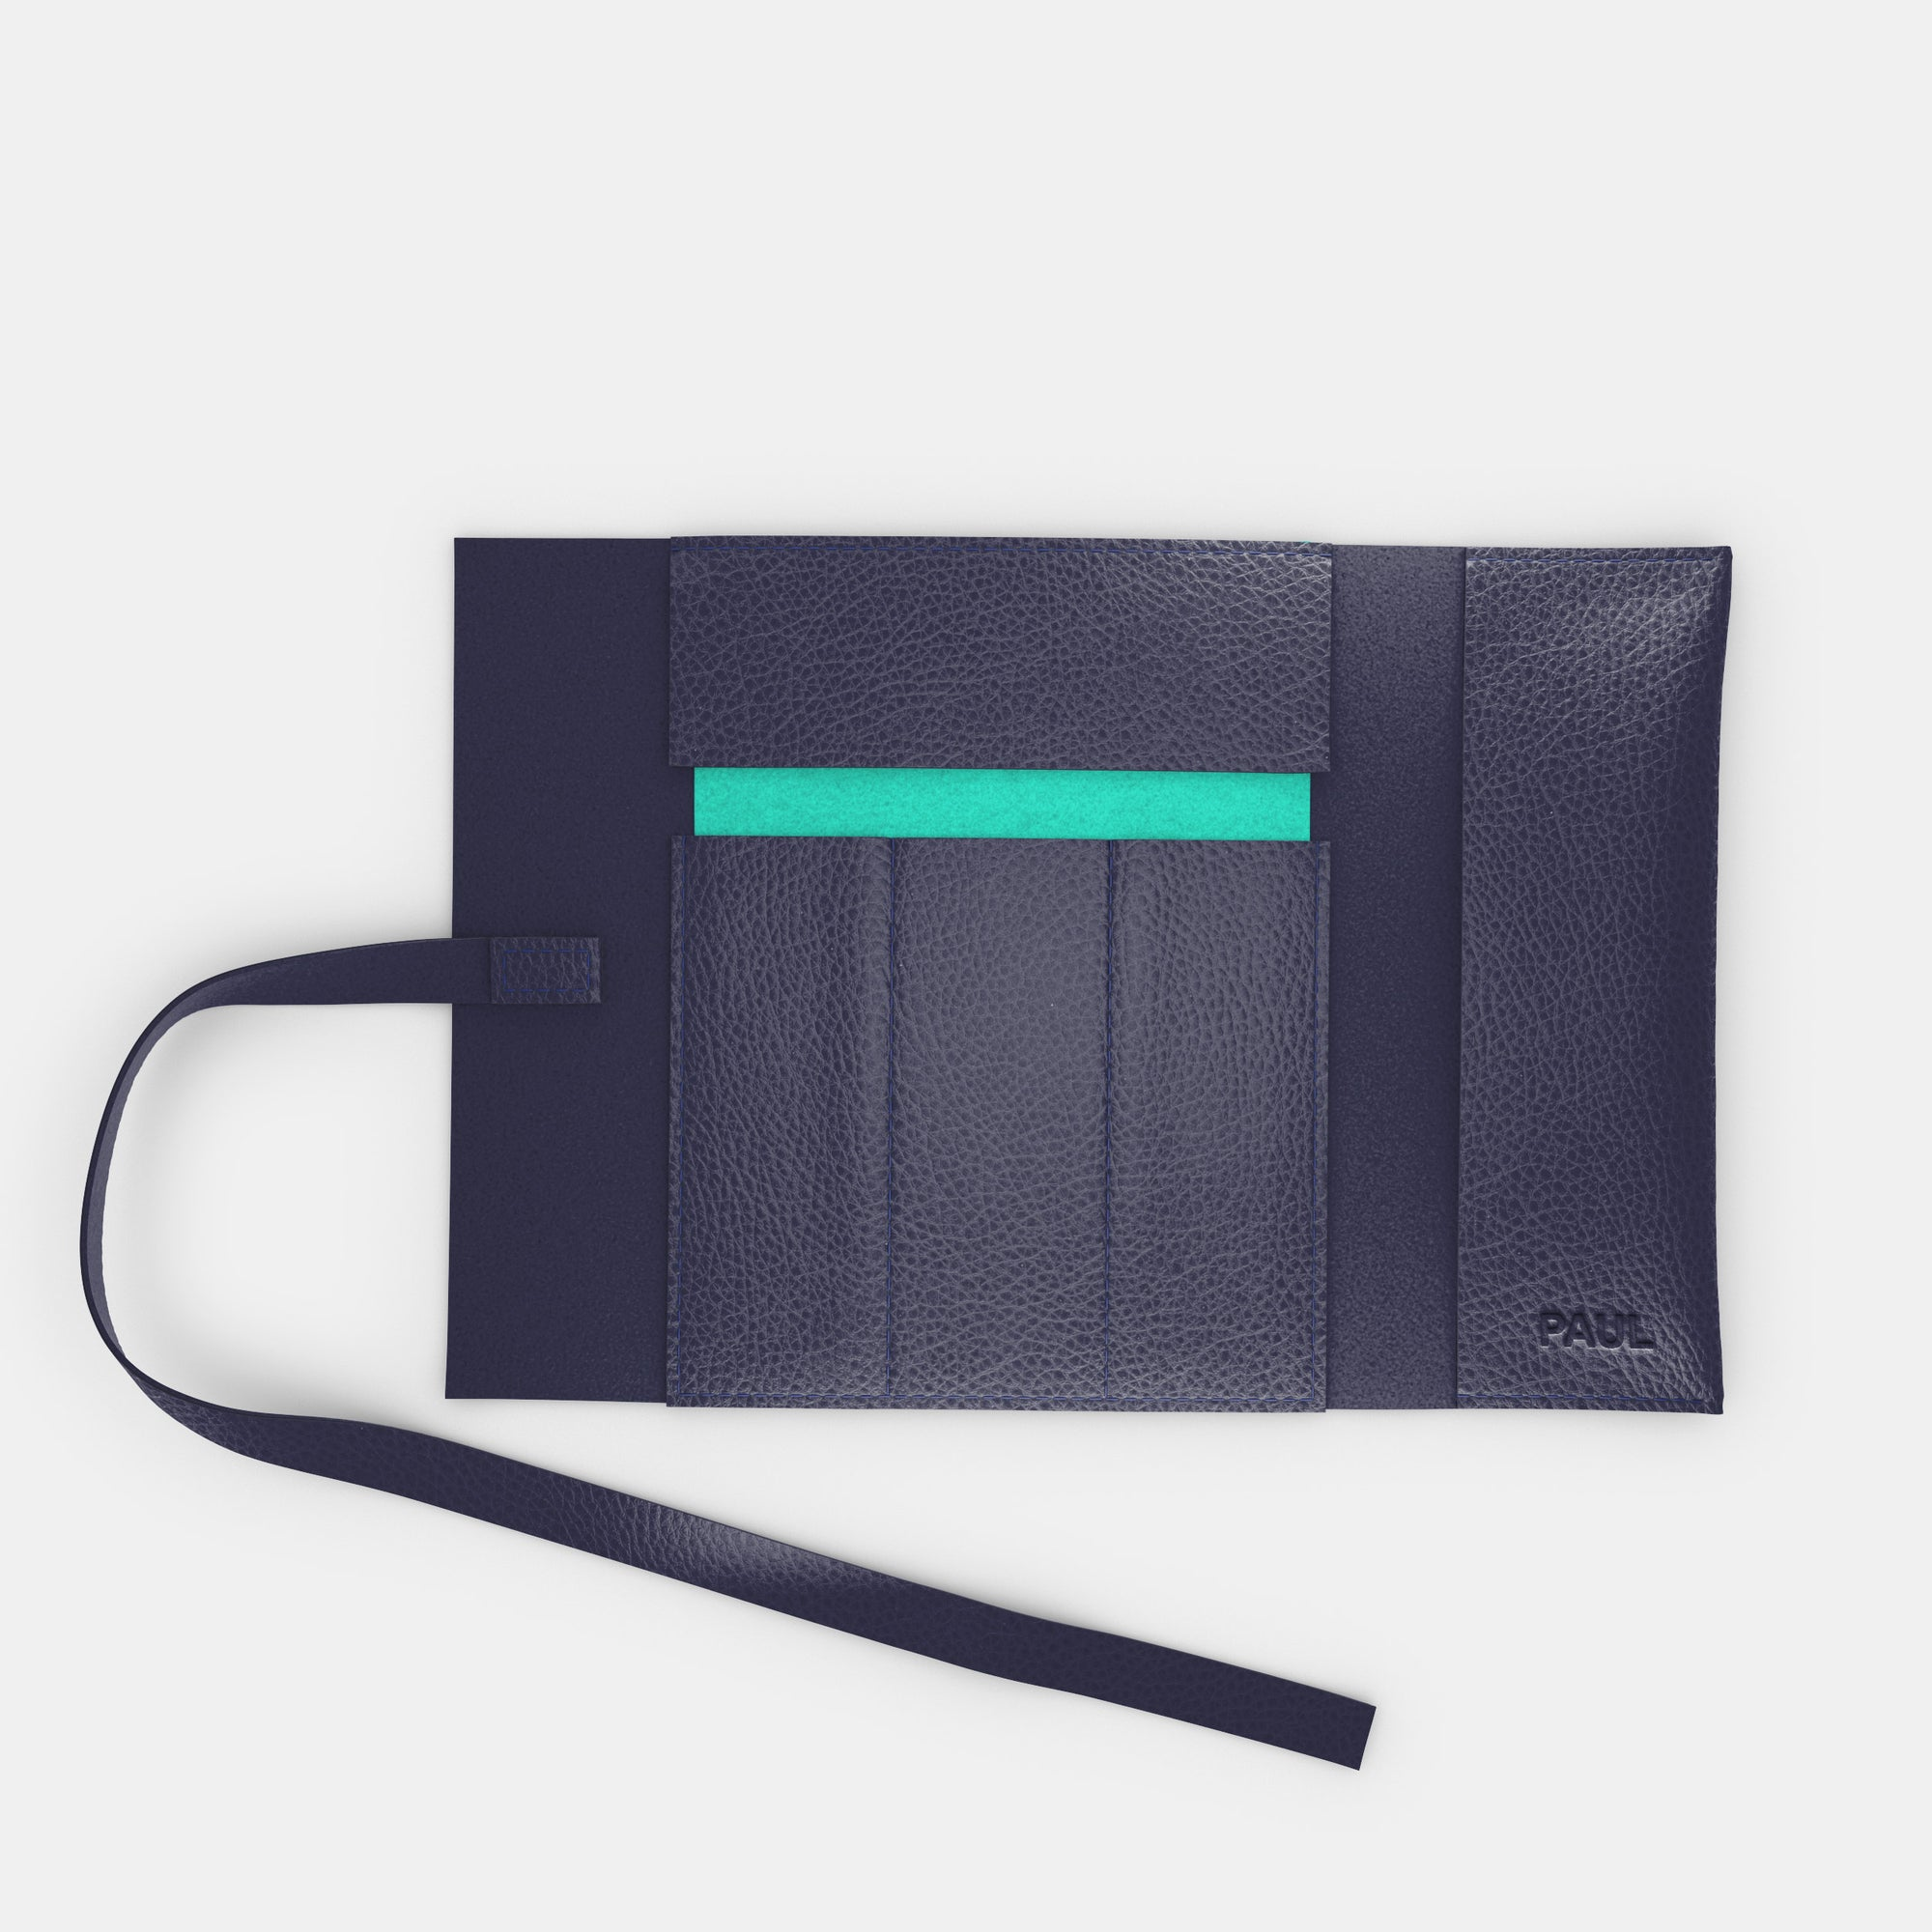 Leather Roll - Navy and Mint - RYAN London